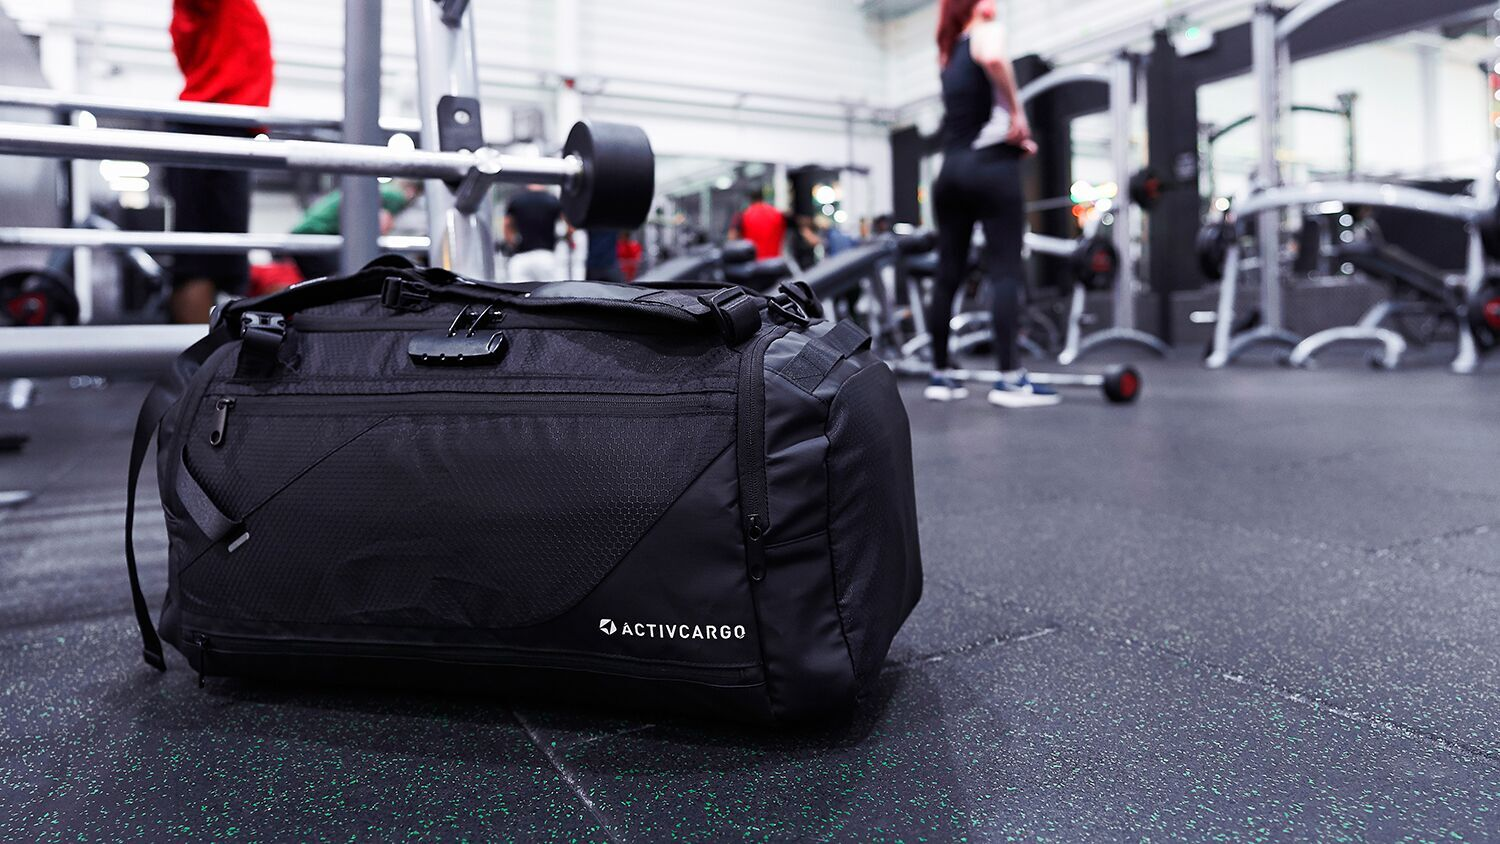 ACTIVCARGO Anti-Theft Sports Bag | The Coolector